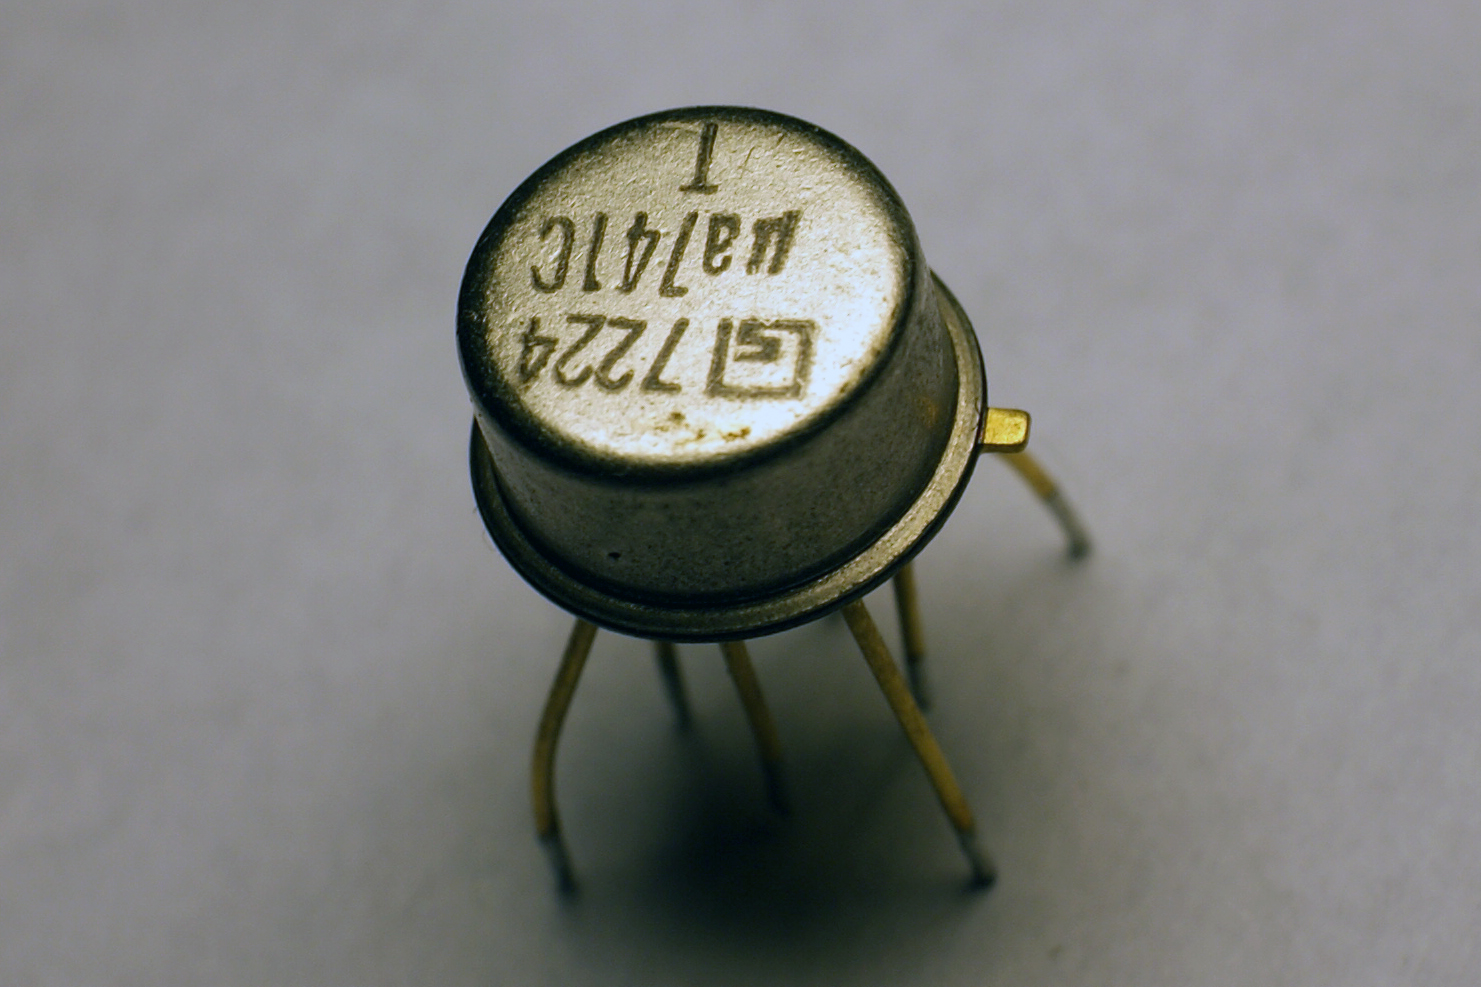 Operational Amplifier Wikiwand Using The Lm741 Construct Openloop Comparator Circuit Shown Be